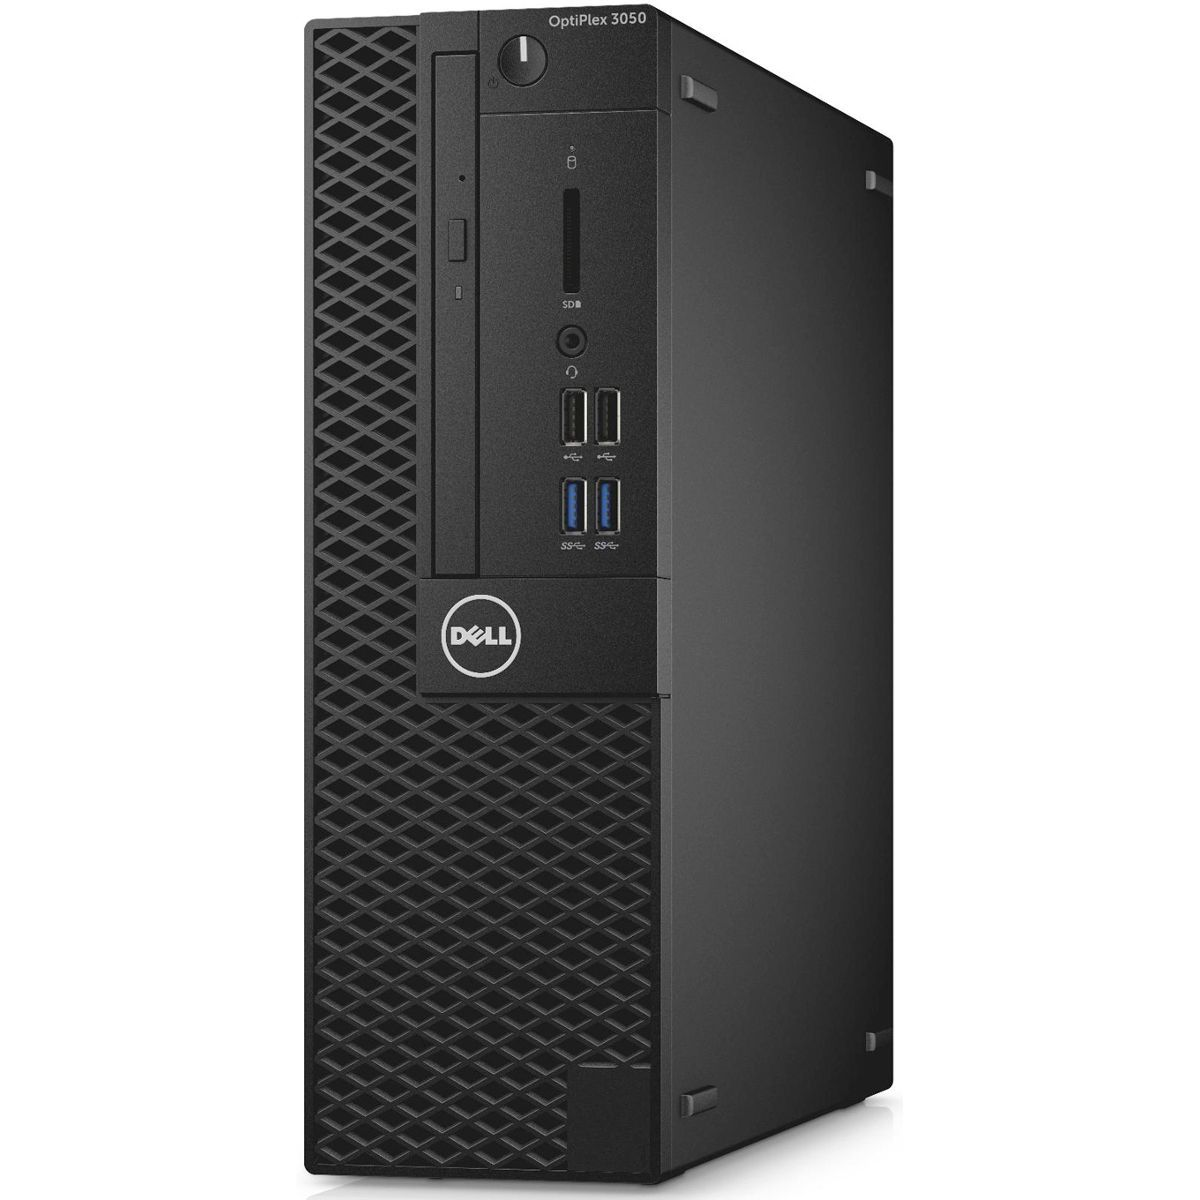 Cpu Dell Optiplex 3050 I5-7500 3.4Ghz|4Gb |500Gb |Windows 10 Pro